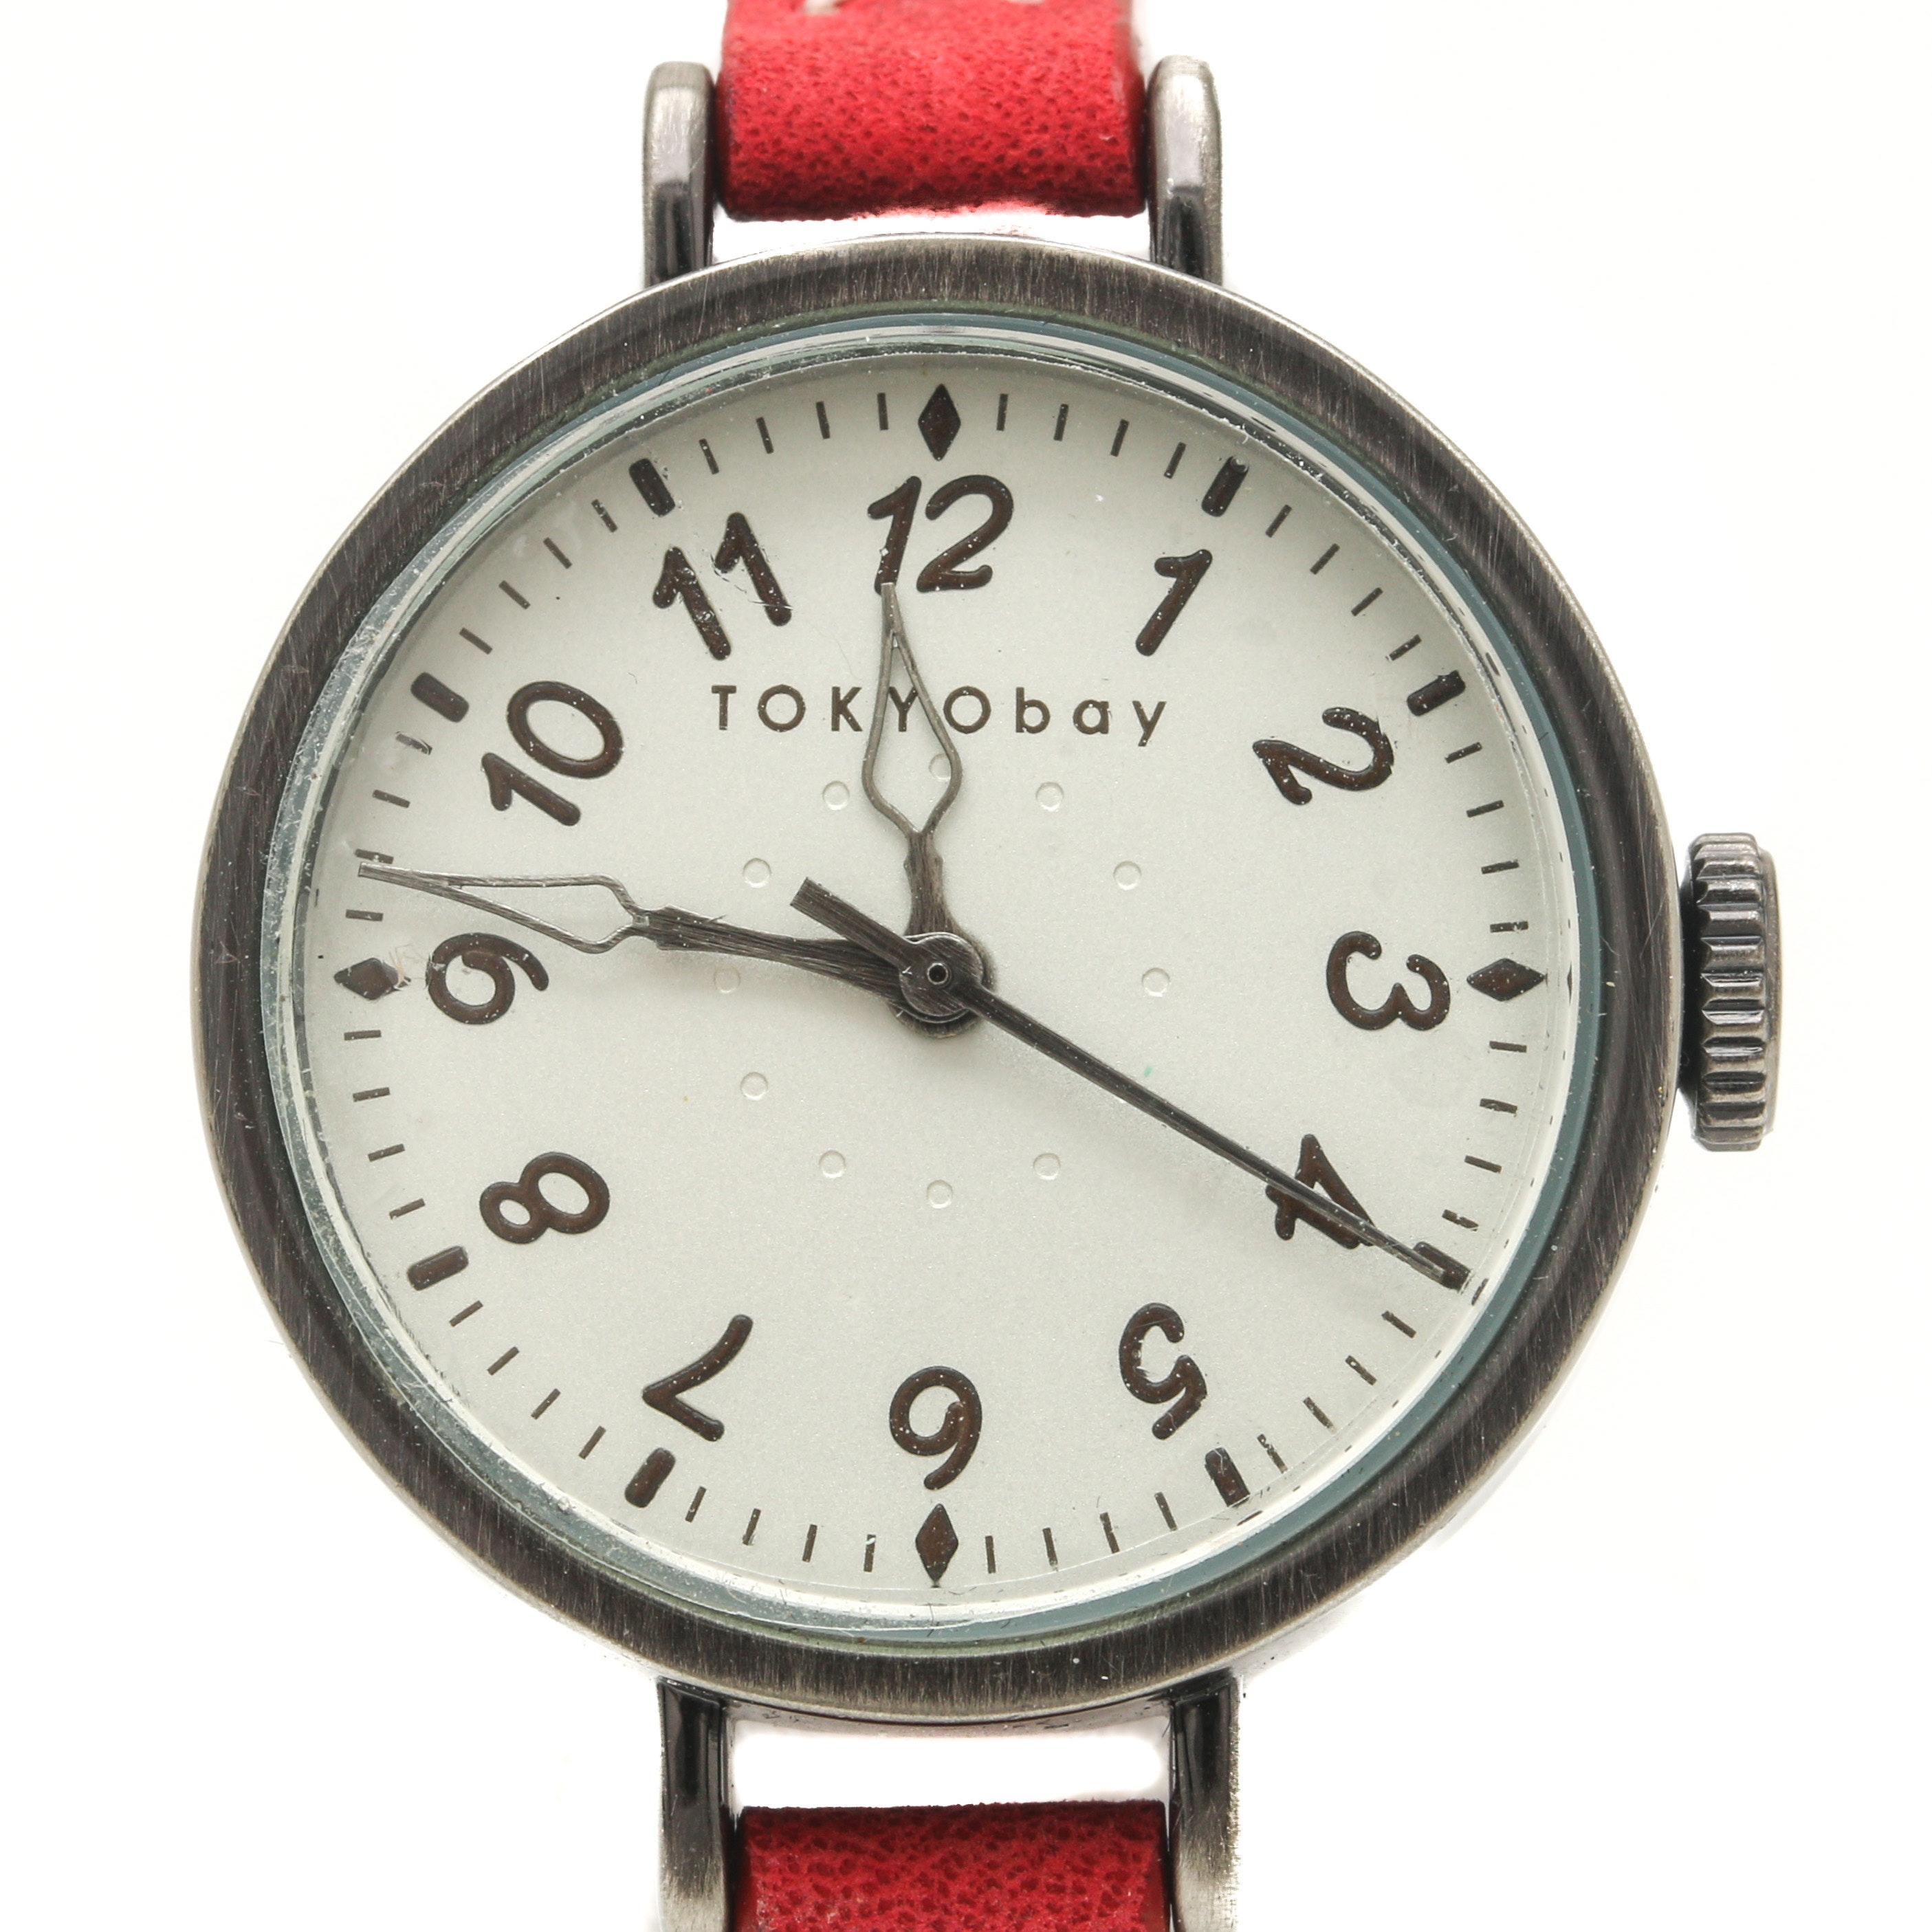 TOKYObay Stainless Steel Wristwatch With Red Leather Strap